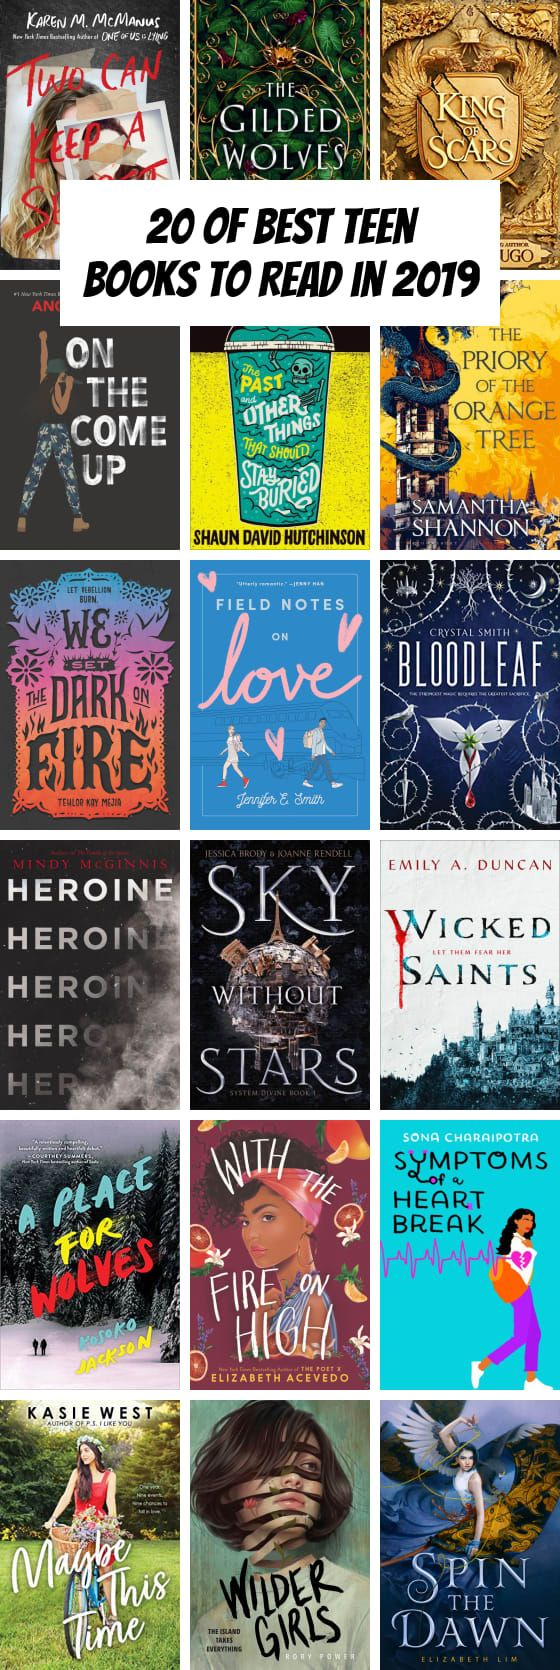 Best Teen Books 2019 20 of Best Teen Books to Read in 2019